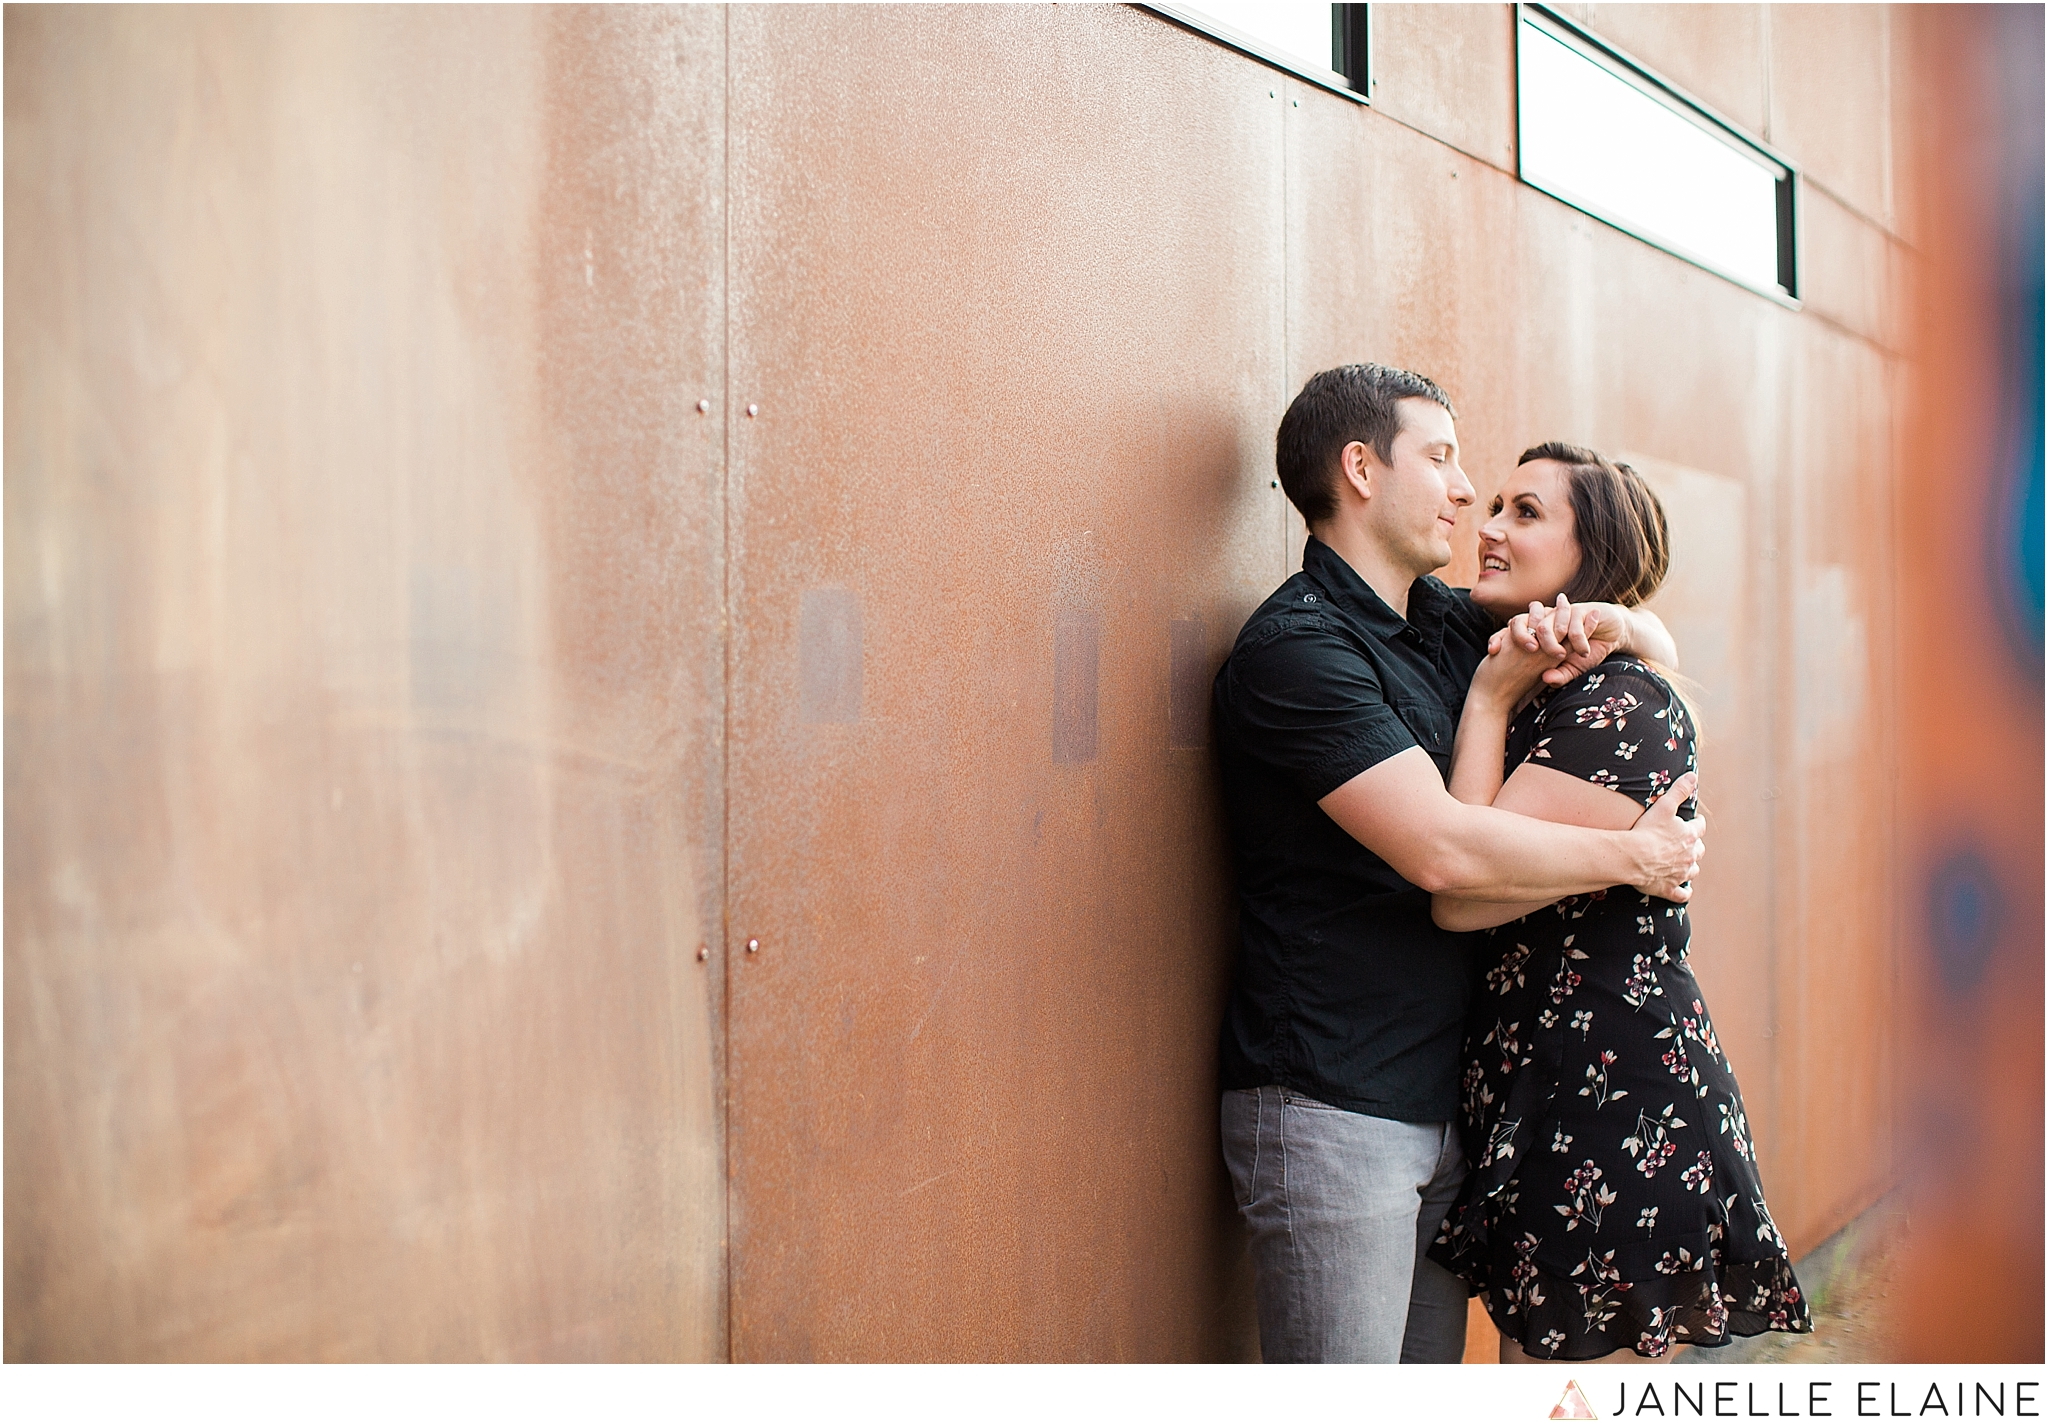 karen ethan-georgetown engagement photos-seattle-janelle elaine photography-32.jpg